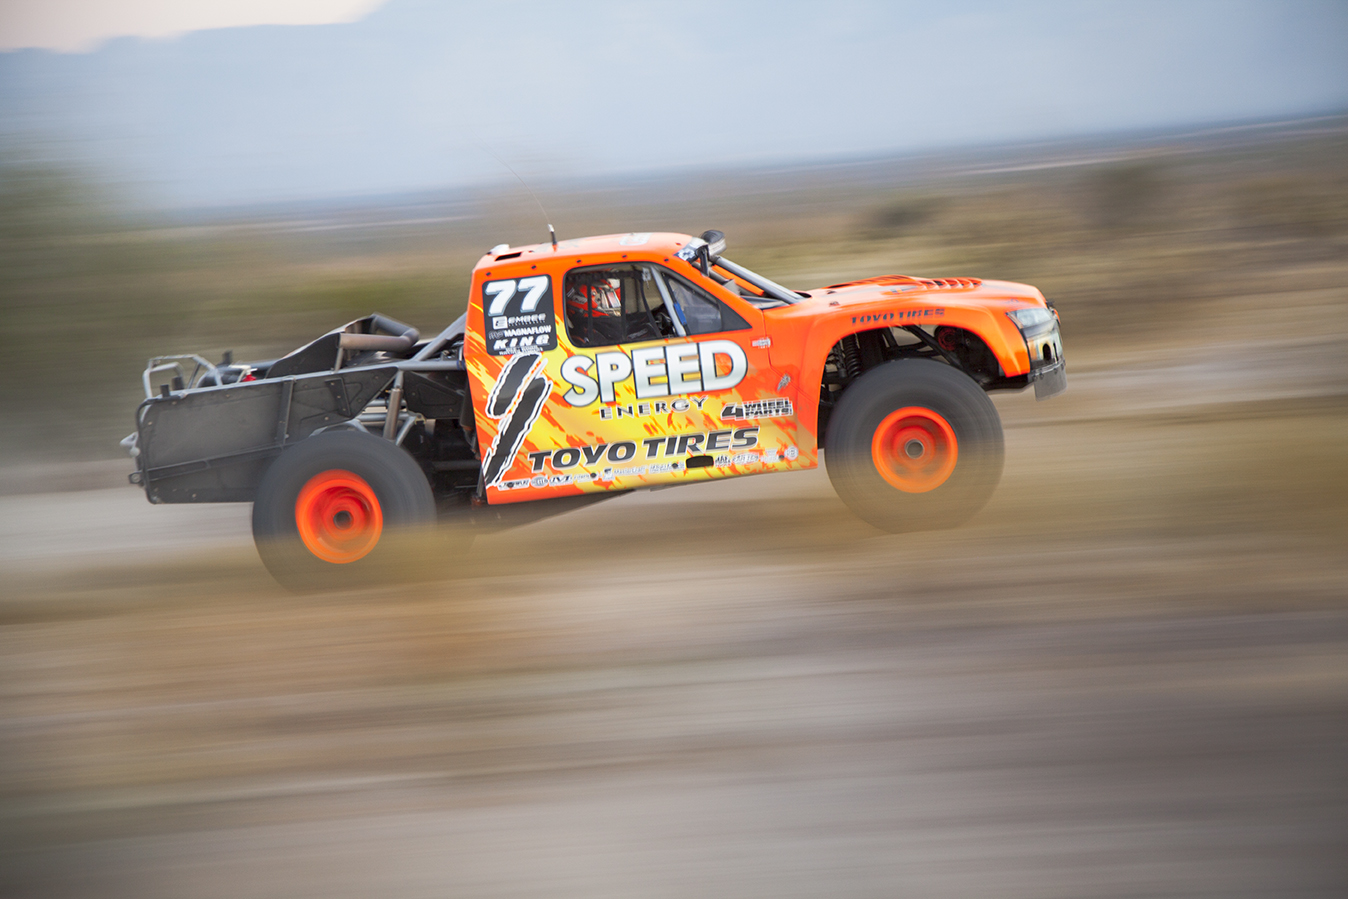 King Off Road Racing Shocks Coil Overs Bypass Oem Utv Air Baja 90cc 5 Pin Wiring Diagram And Robby Gordon Announce New Engineering Manufacturing Partnership